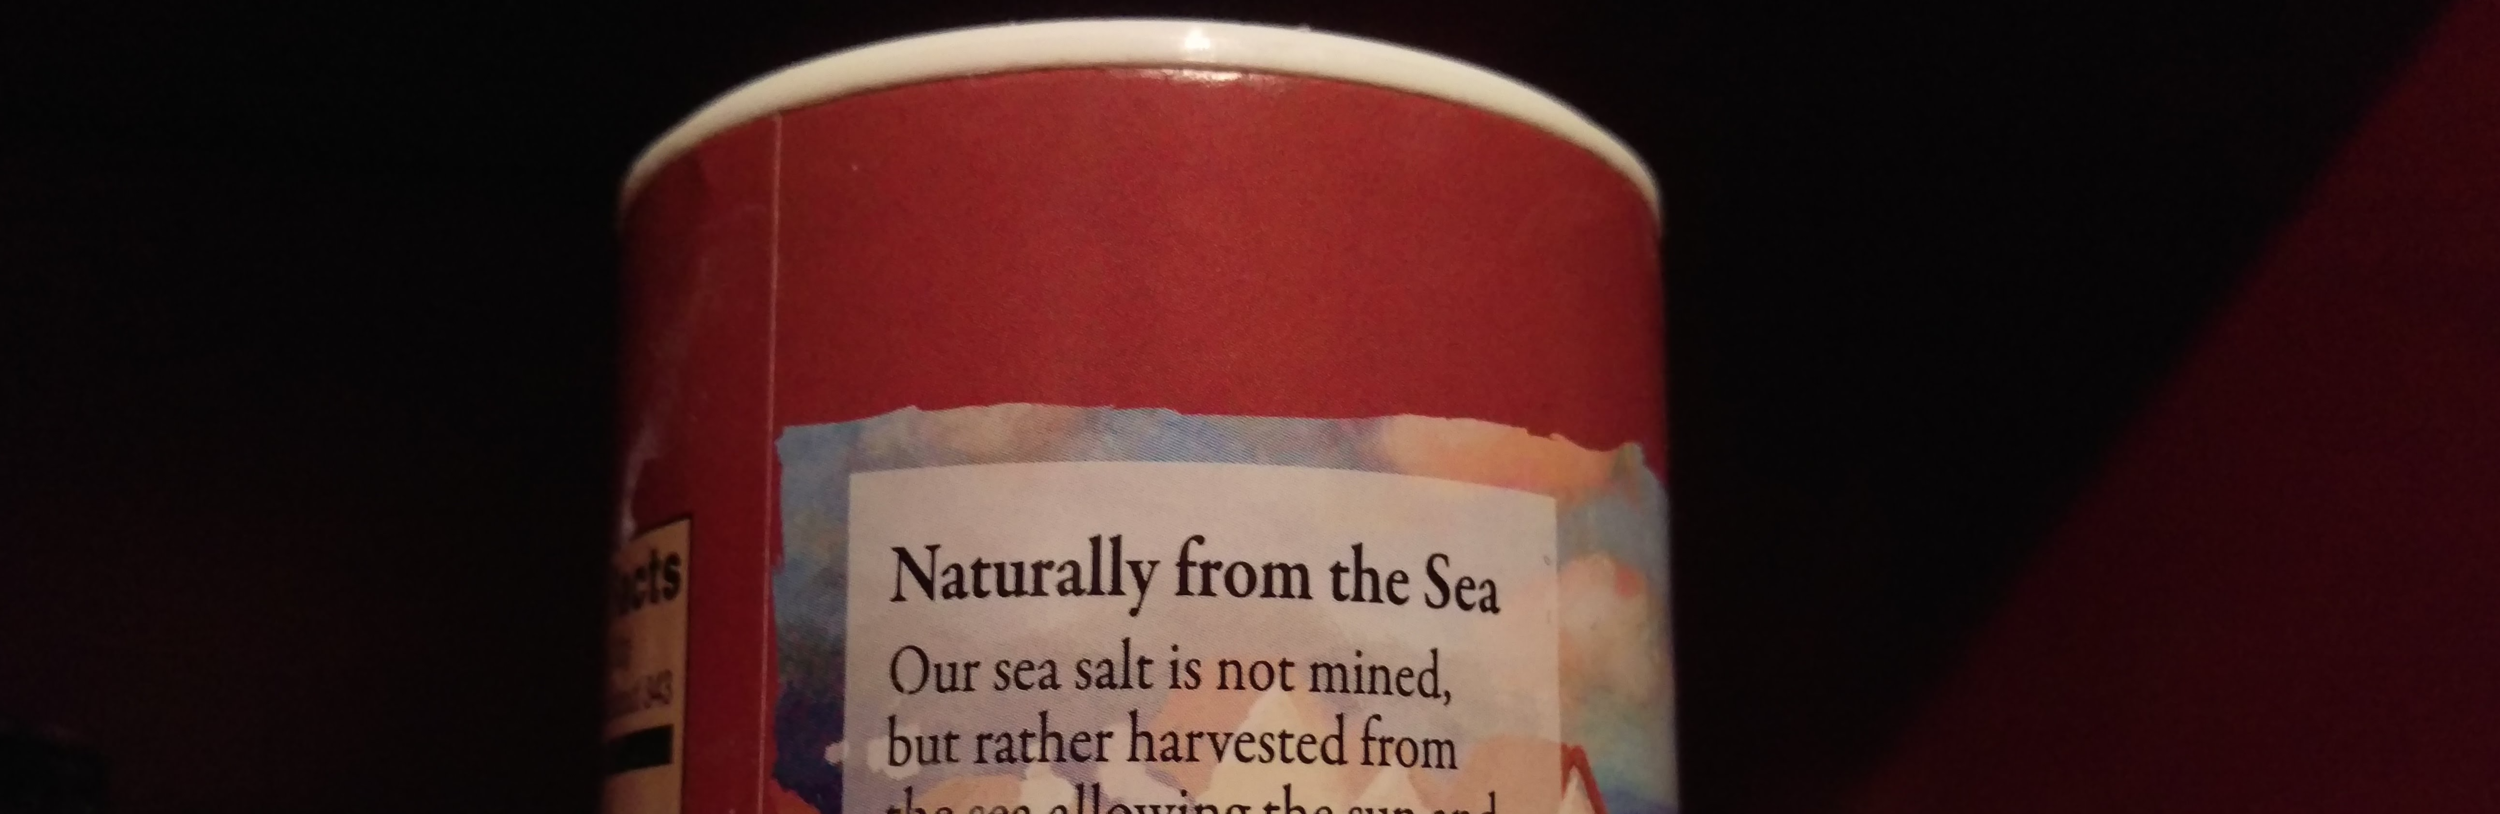 naturally from the sea.png